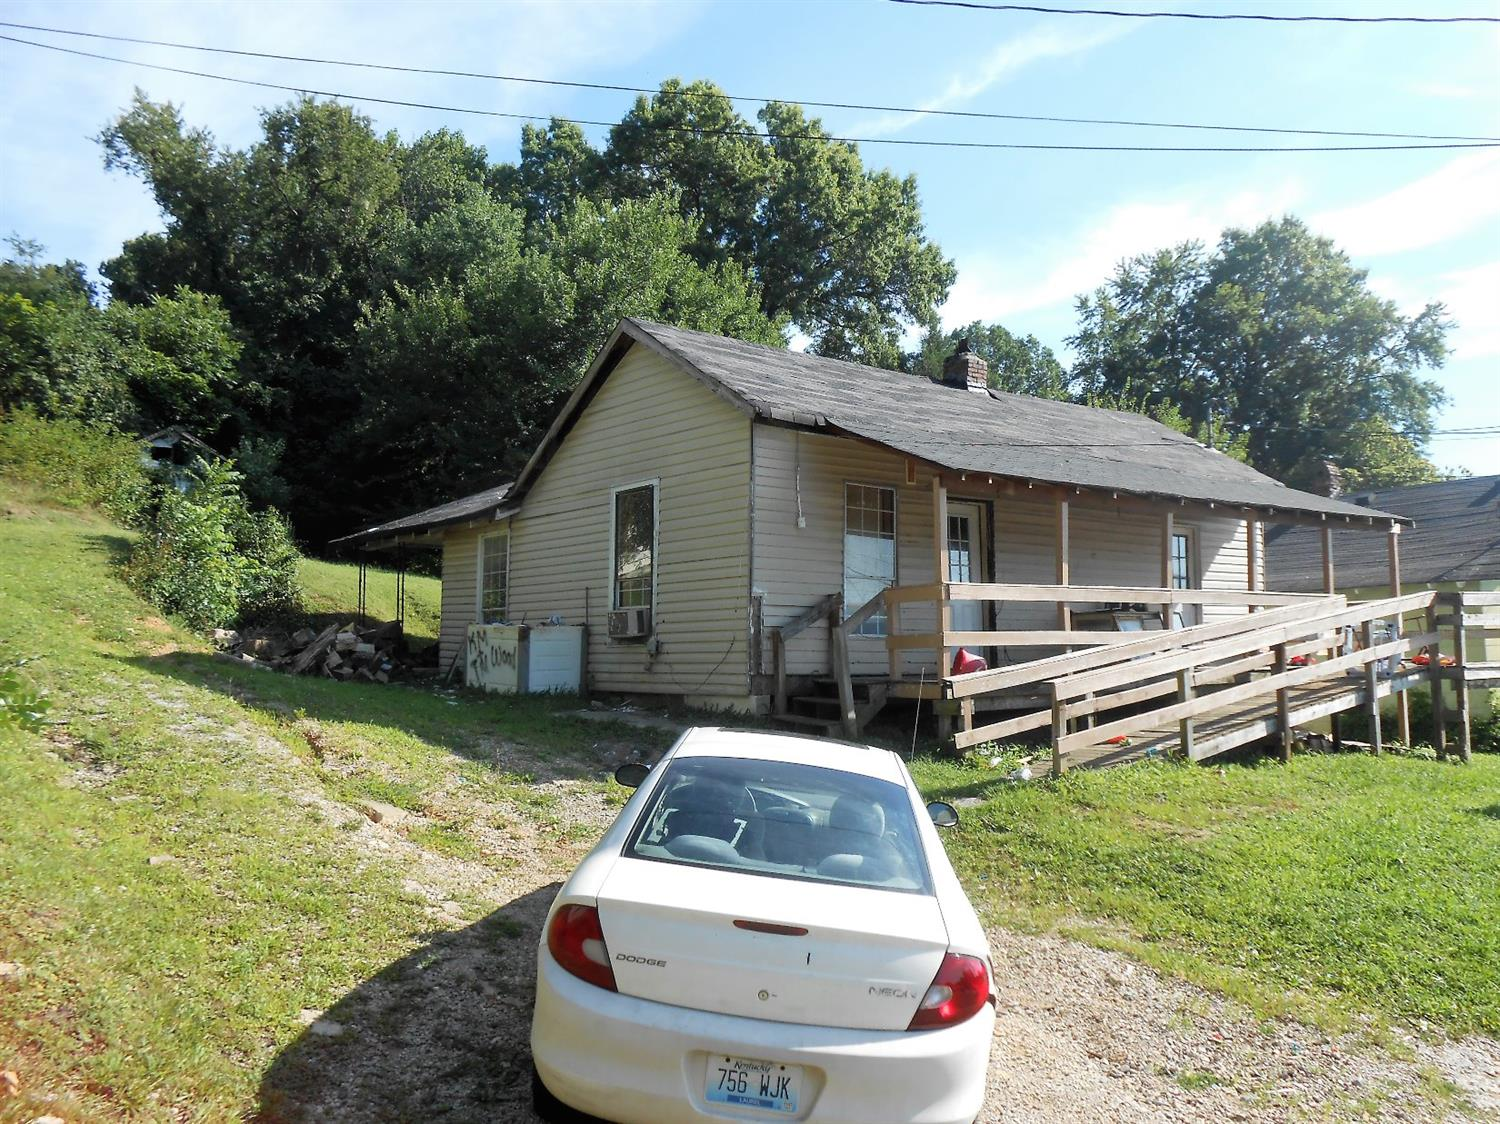 206 15TH STREET, CORBIN, KY 40701